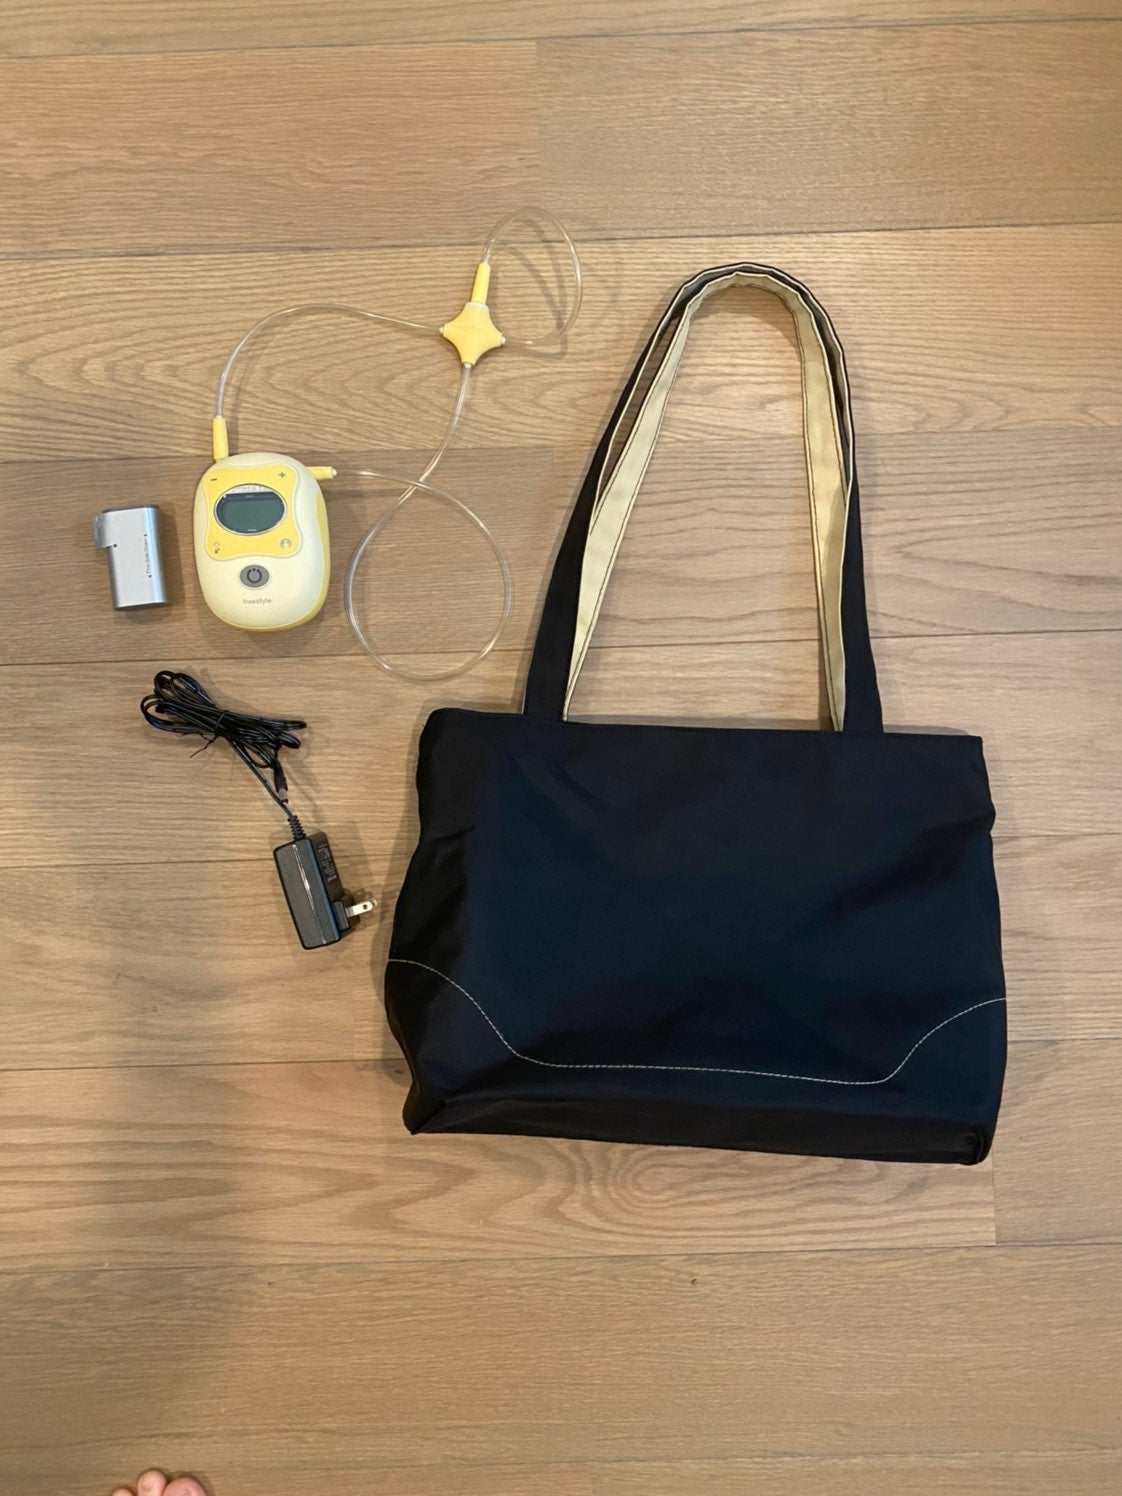 Medela portable freestyle breast pump